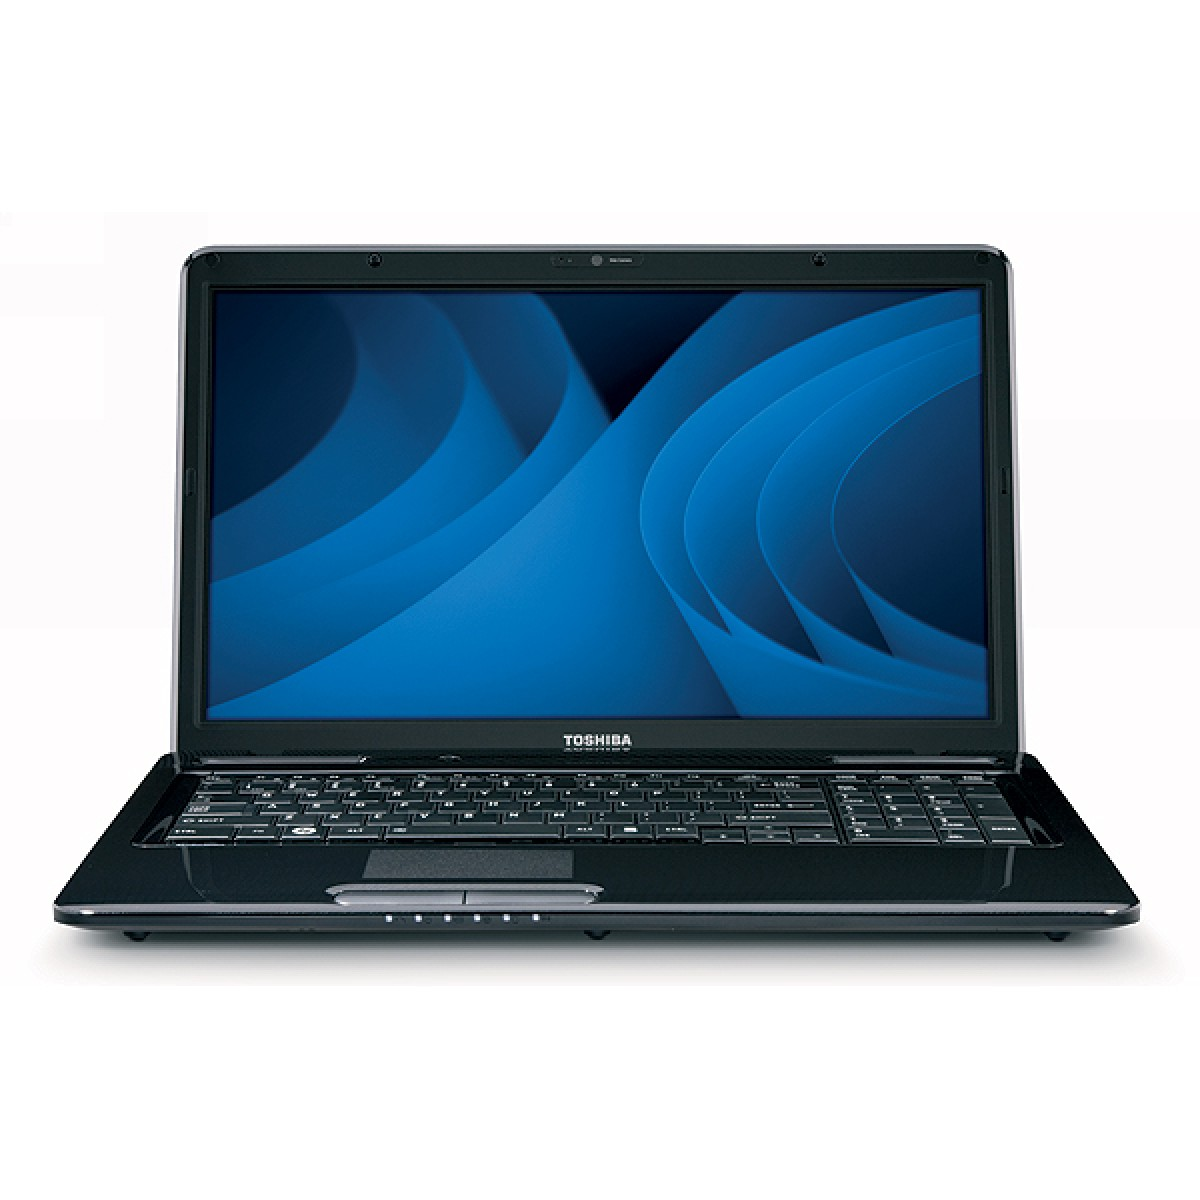 "Refurbished Toshiba L675D-S7106 Laptop 17.3"" AMD Triple Core 4GB Memory 500GB Drive Win 7"